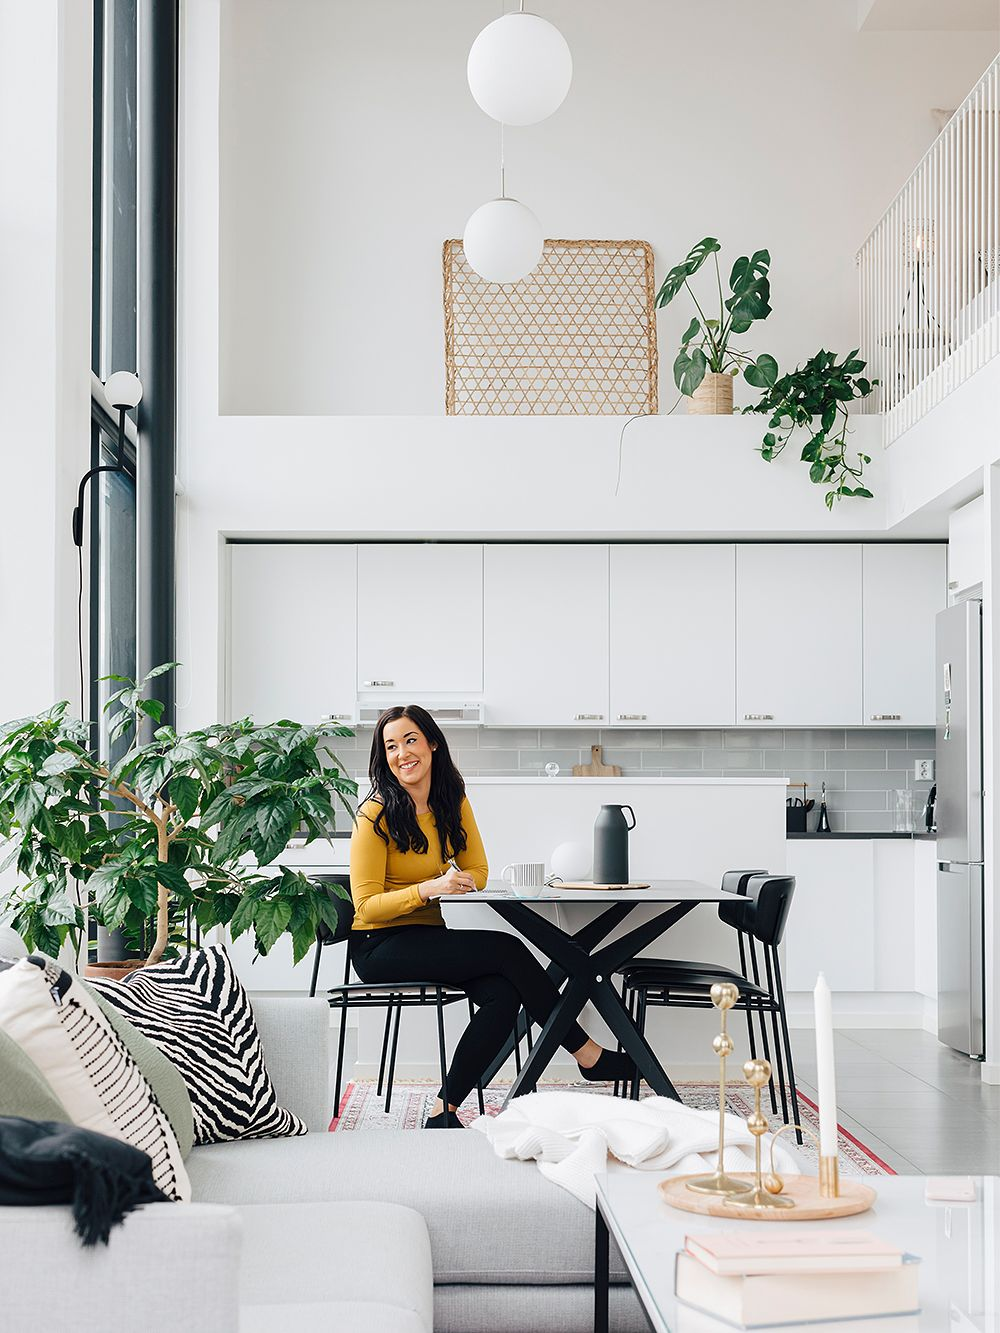 Linda S Modern Loft Apartment Combines Scandinavian Style With Oriental Patterns Design Stories,Tribal Sleeve Tattoo Designs